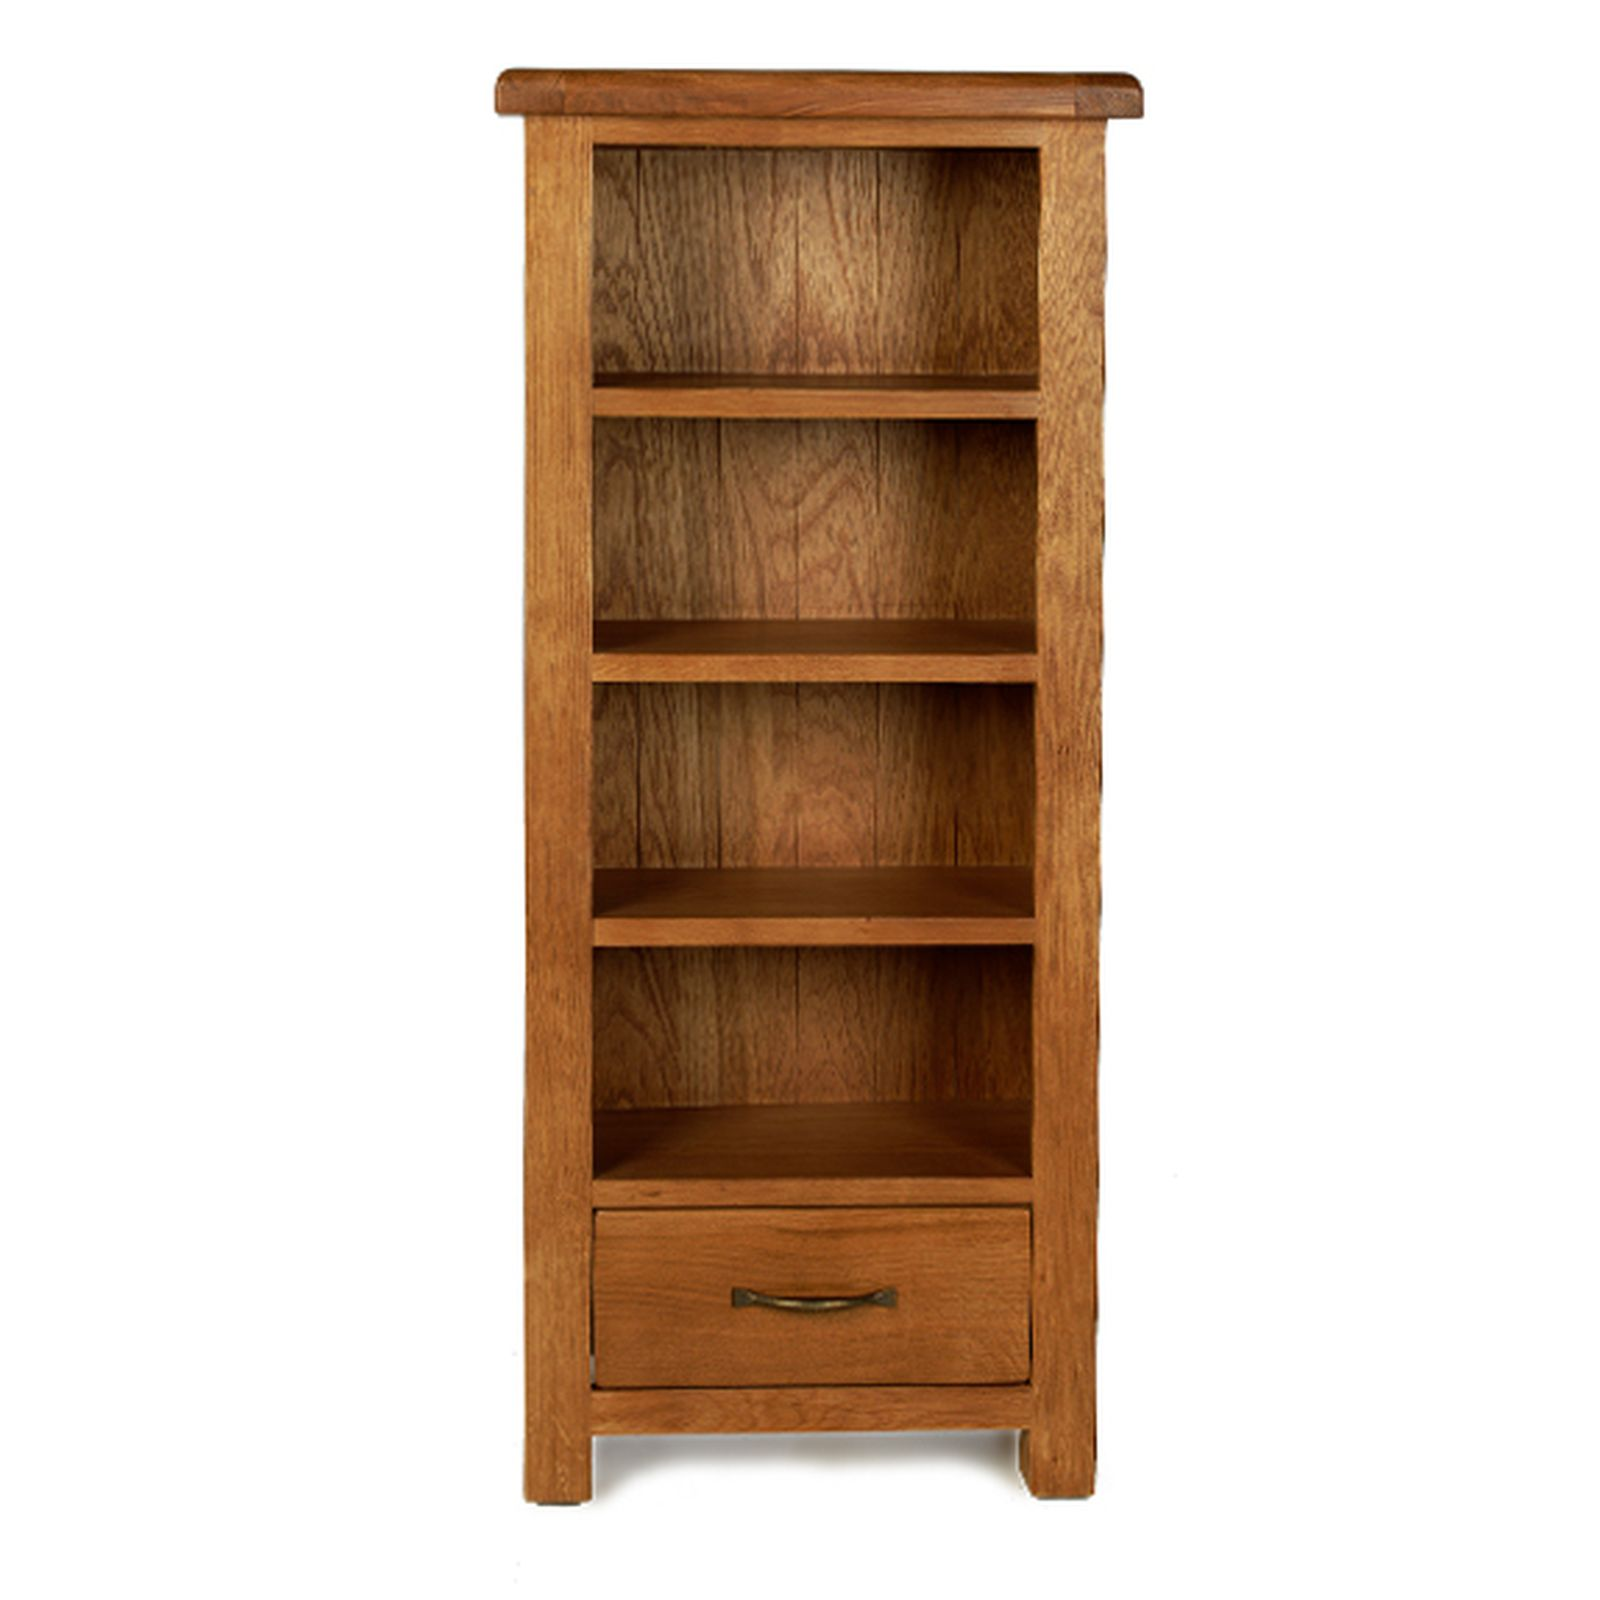 Rushden solid oak furniture cd dvd storage cabinet rack ebay for Solid oak furniture